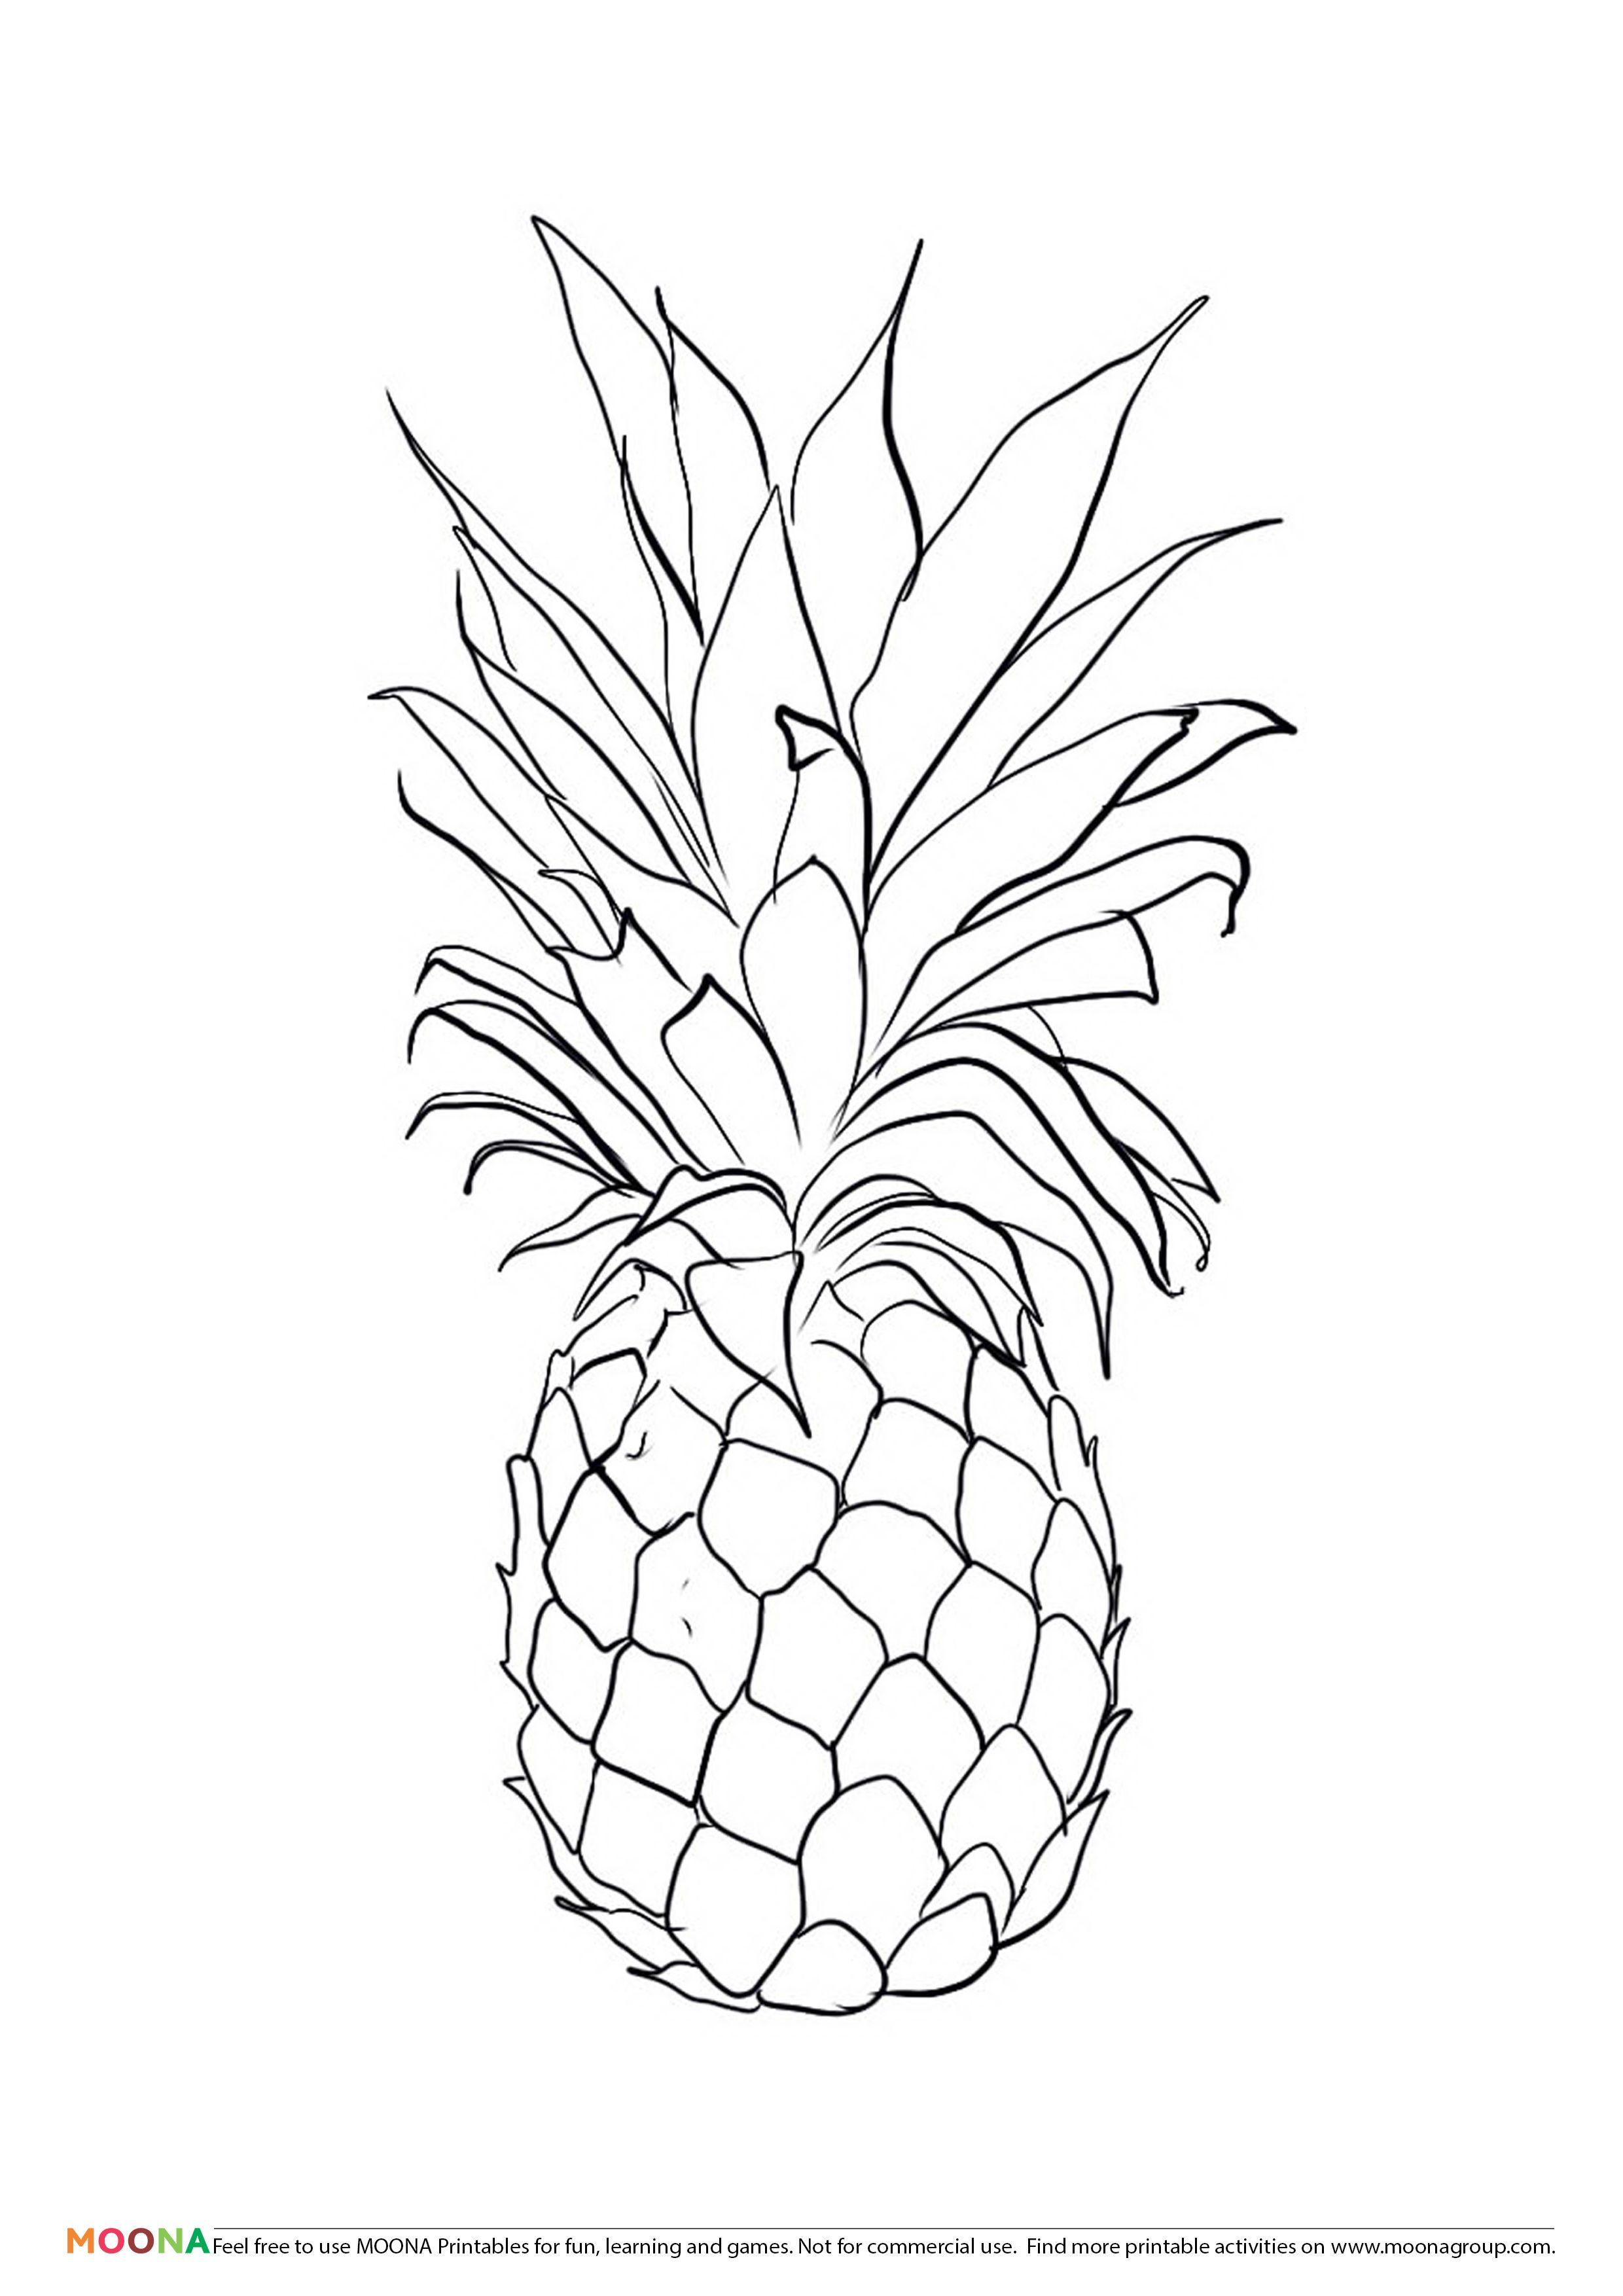 Pin about Printable tattoos and Pineapple drawing on Tattoos